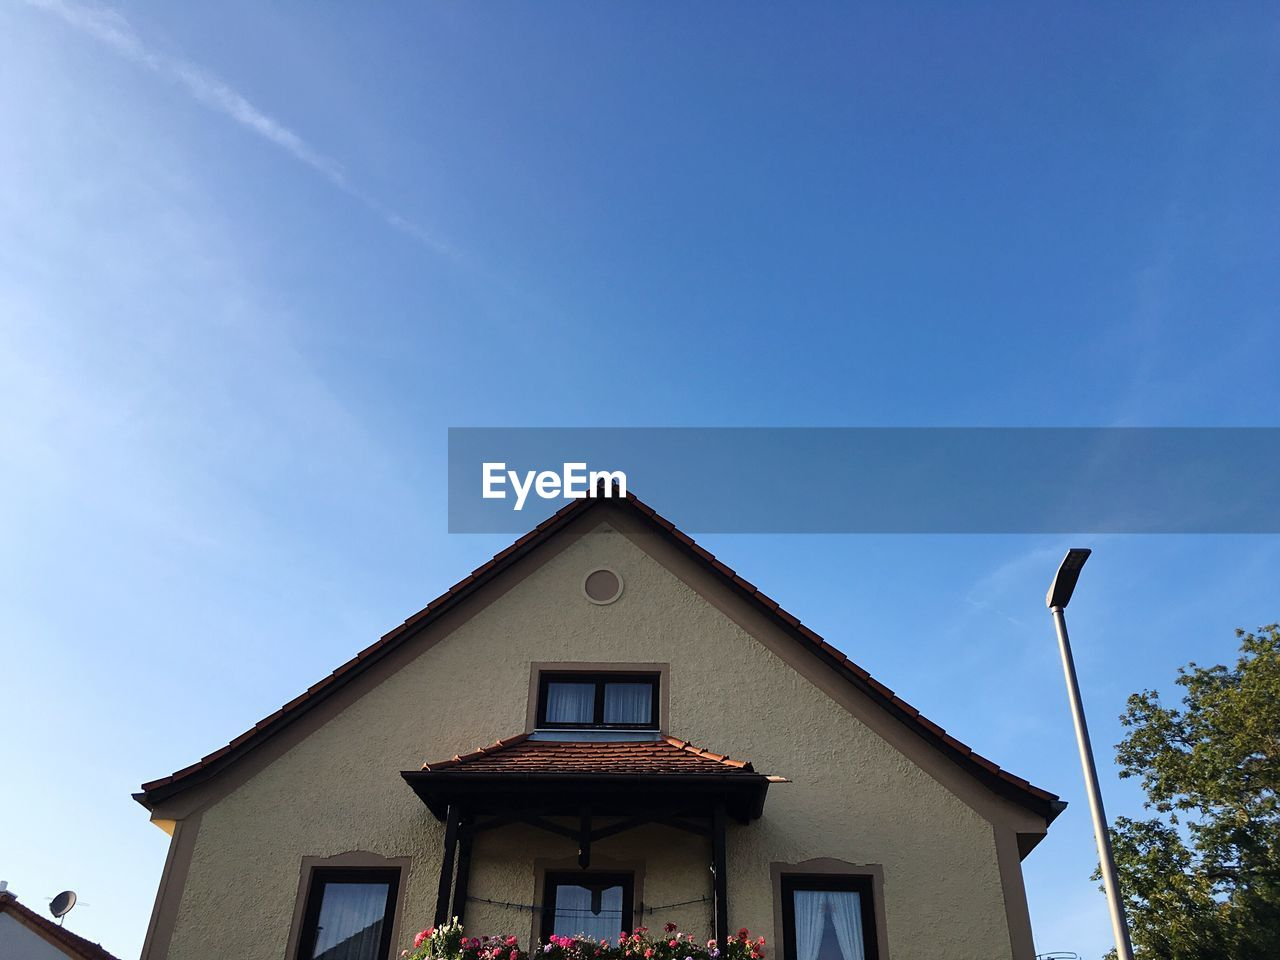 Low Angle View Of House Against Sky During Sunny Day